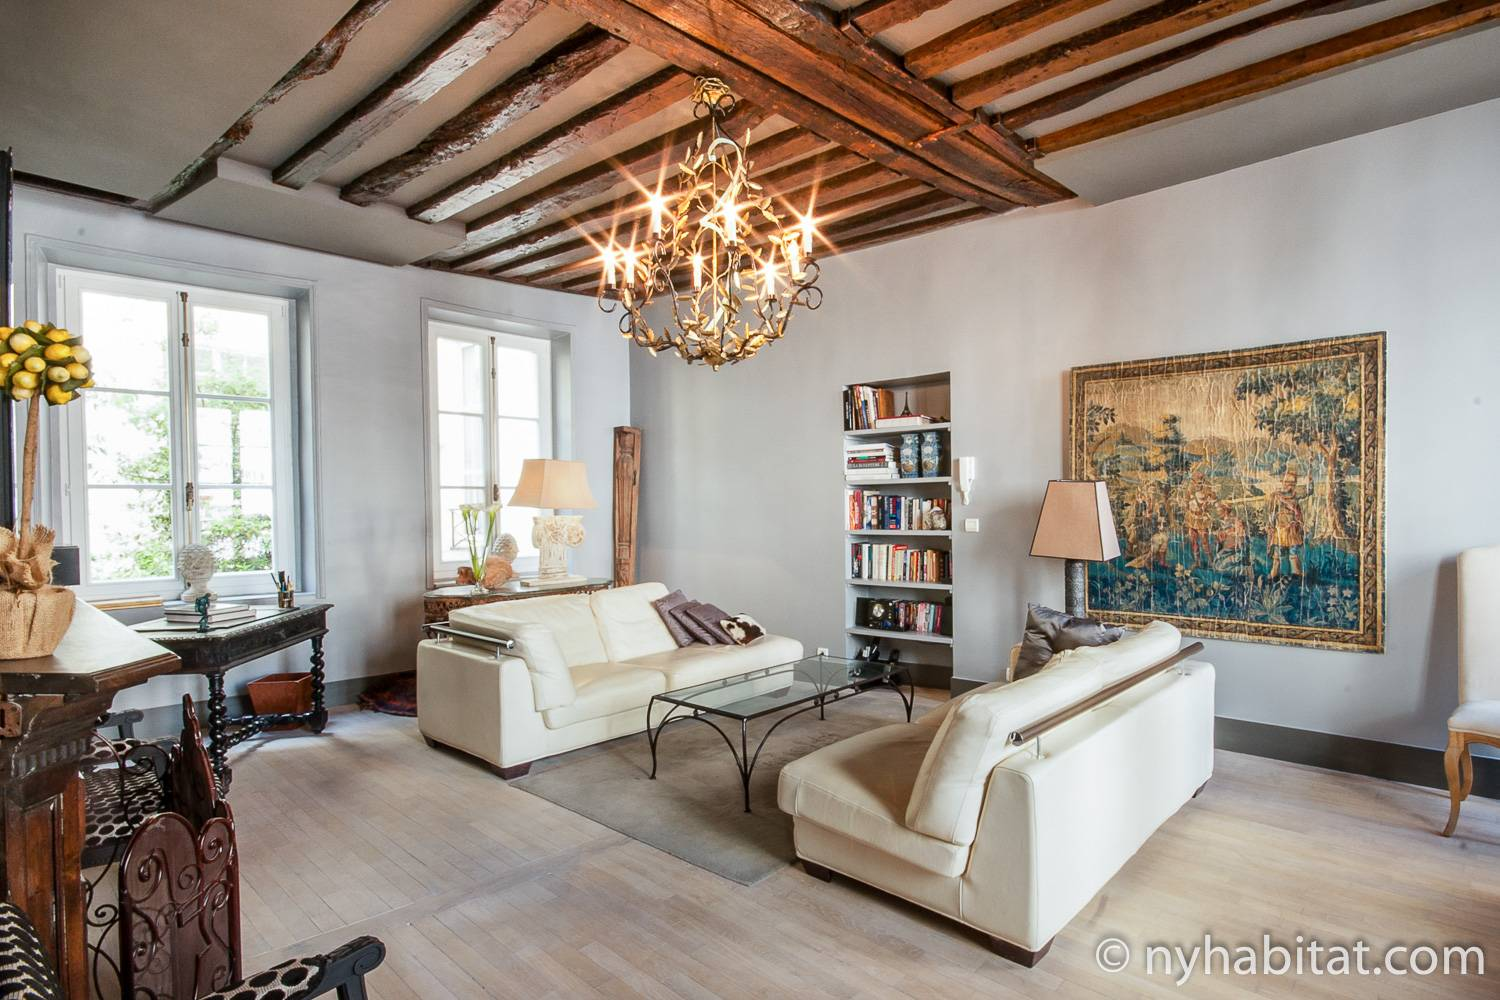 Image of the living room of Le Marais, Paris vacation rental PA-1344 with a chandelier and two couches.